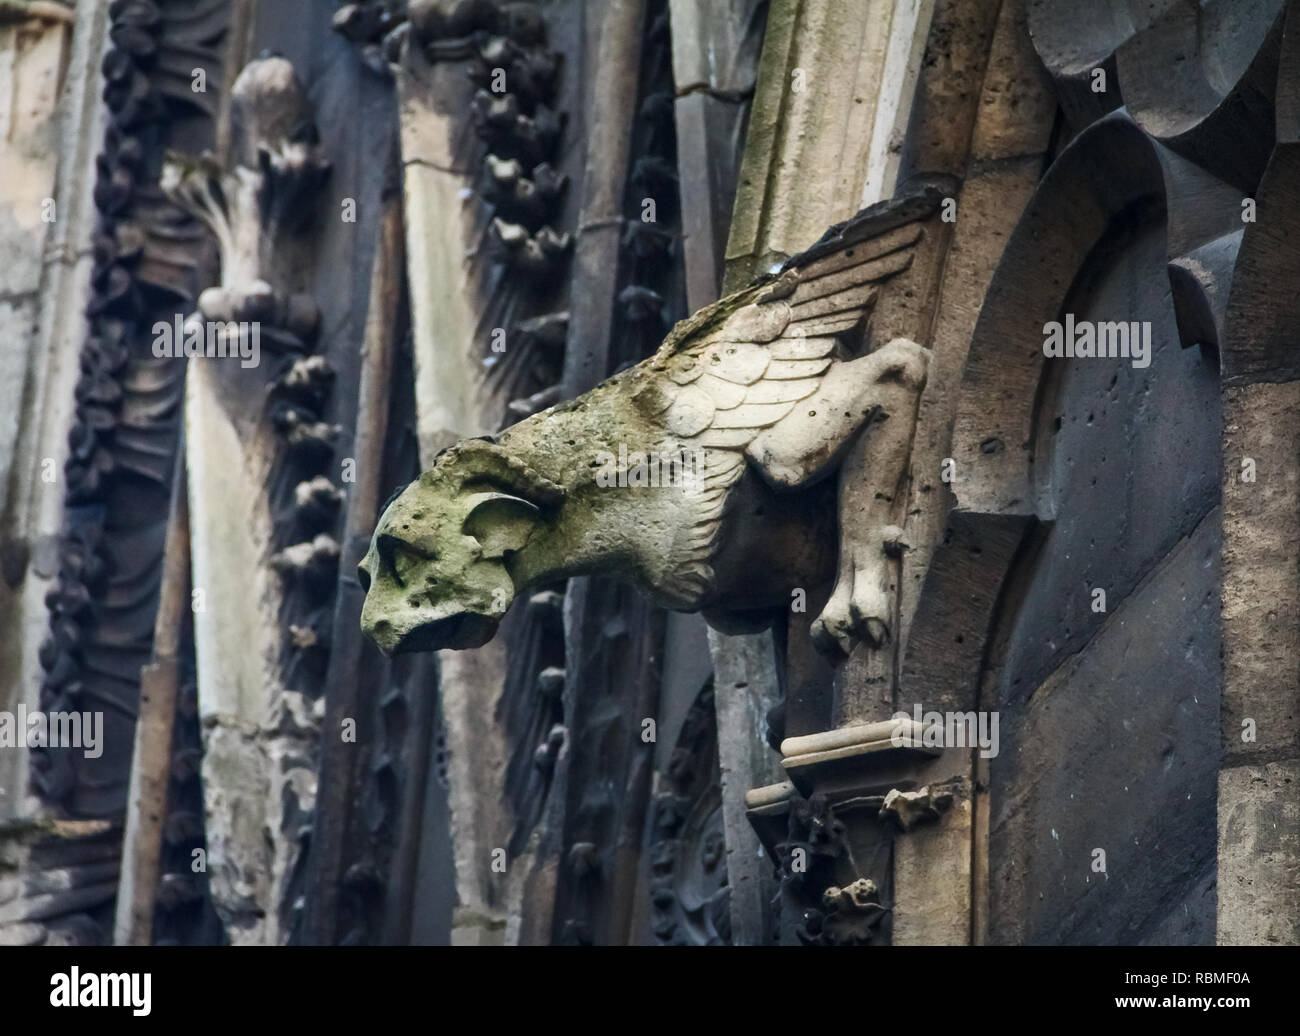 Gothic gargoyles covered in moss on the facade of the famous Notre Dame de Paris Cathedral in Paris France Stock Photo